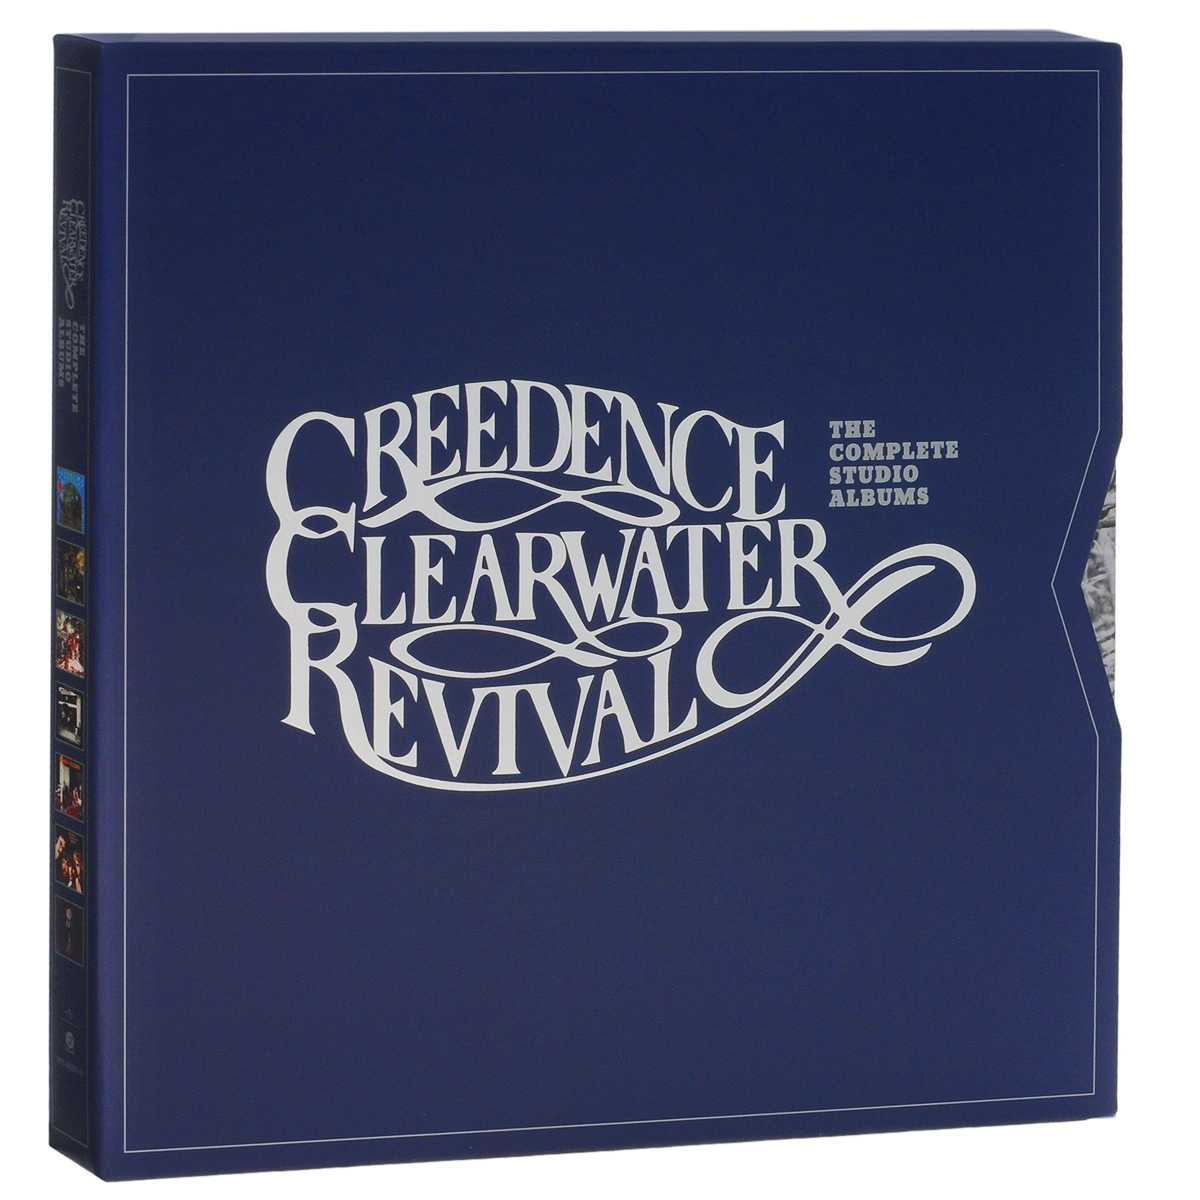 Creedence Clearwater Revival Creedence Clearwater Revival. The Complete Studio Albums (7 LP)